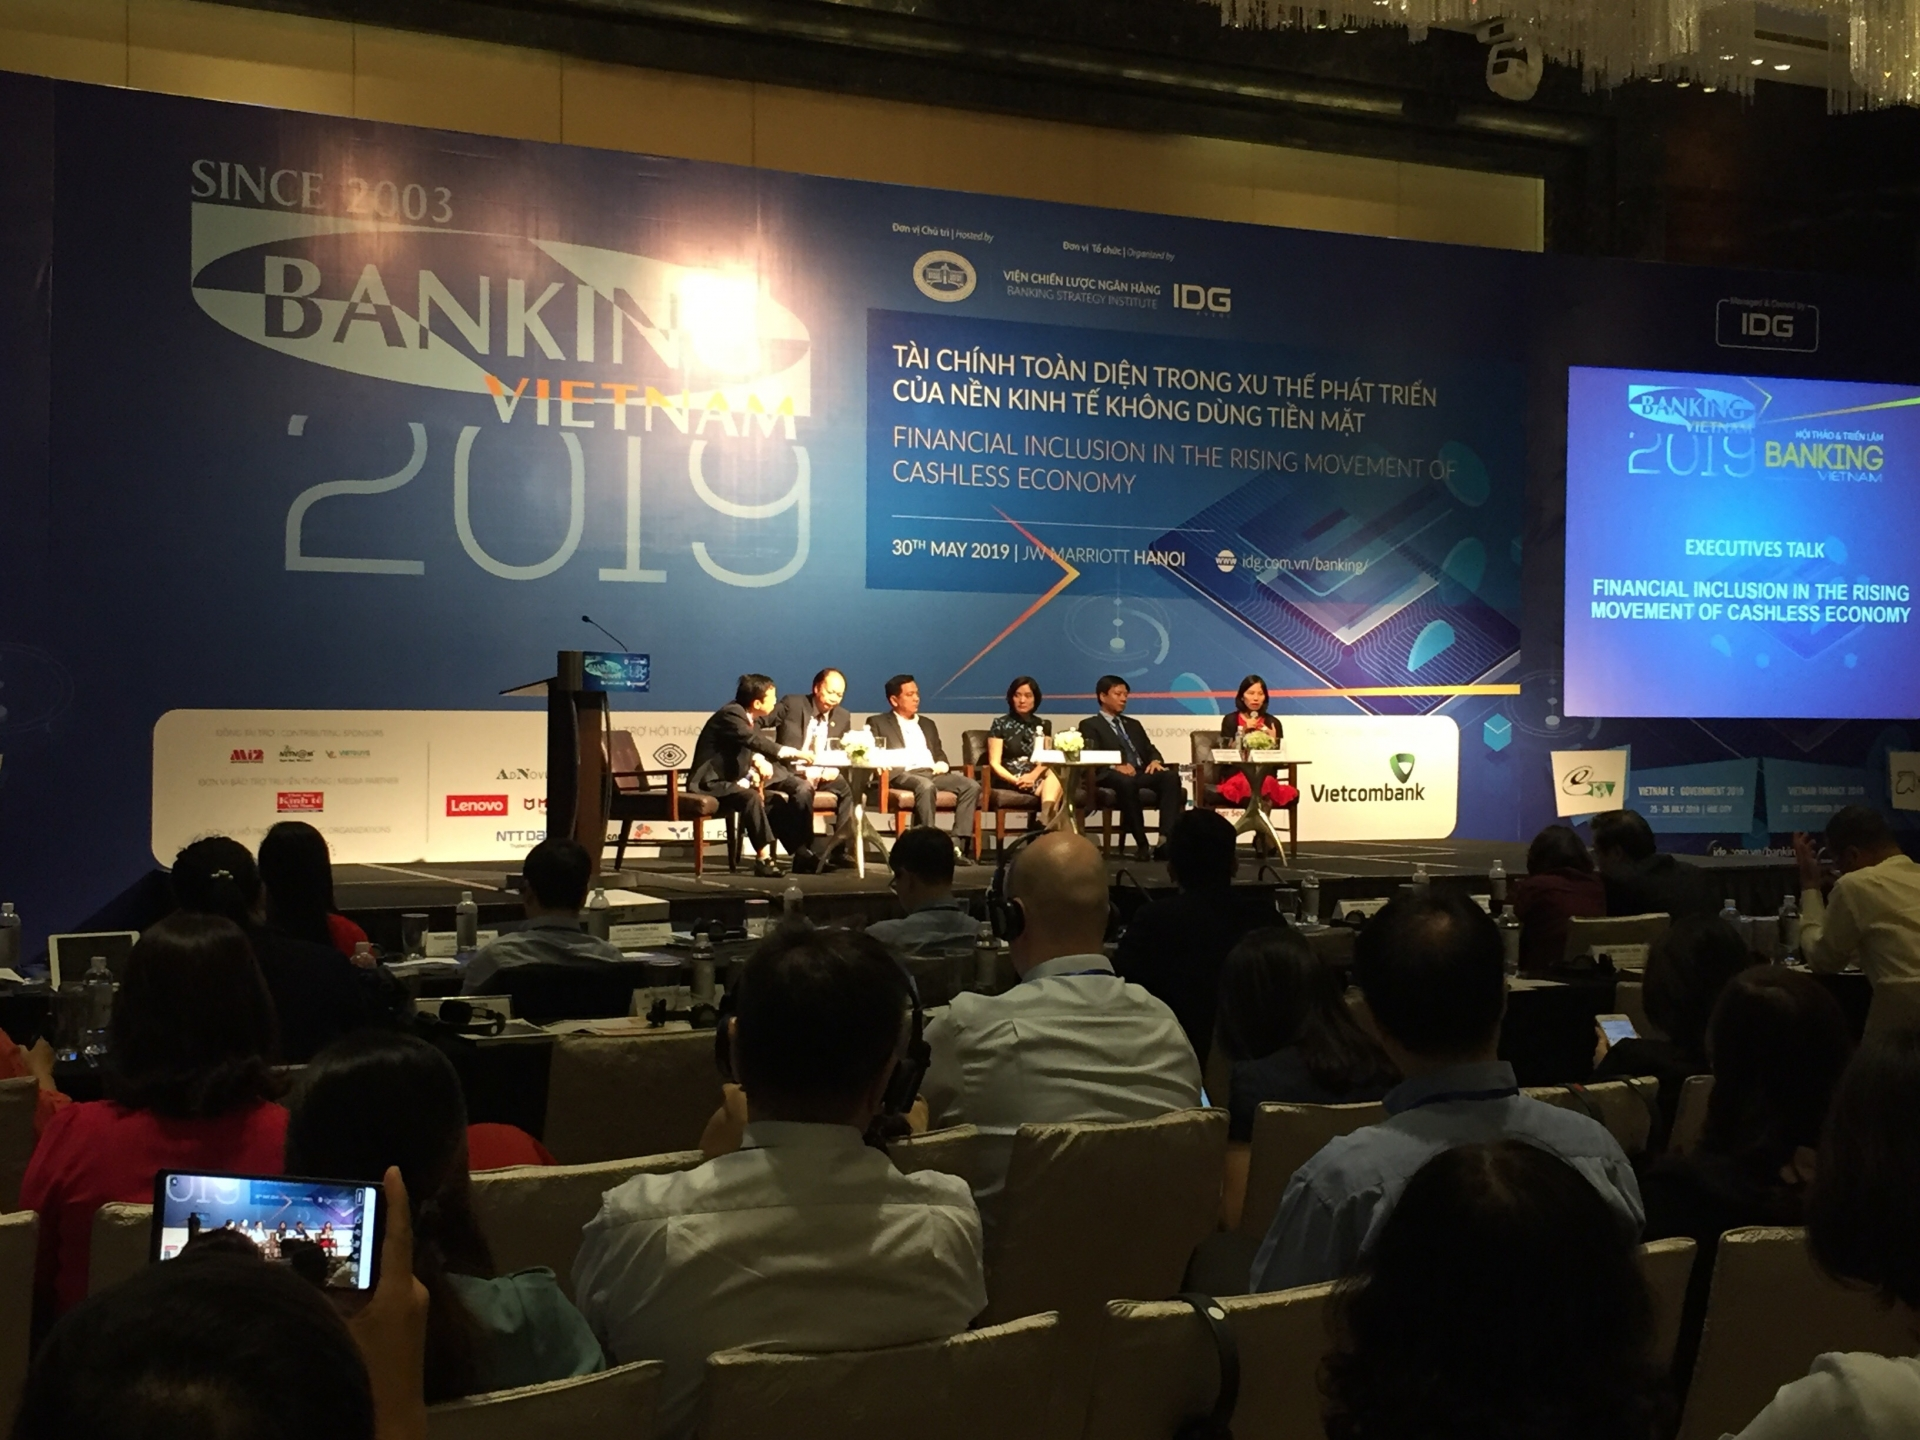 Banking Vietnam 2019: comprehensive finance in a cashless